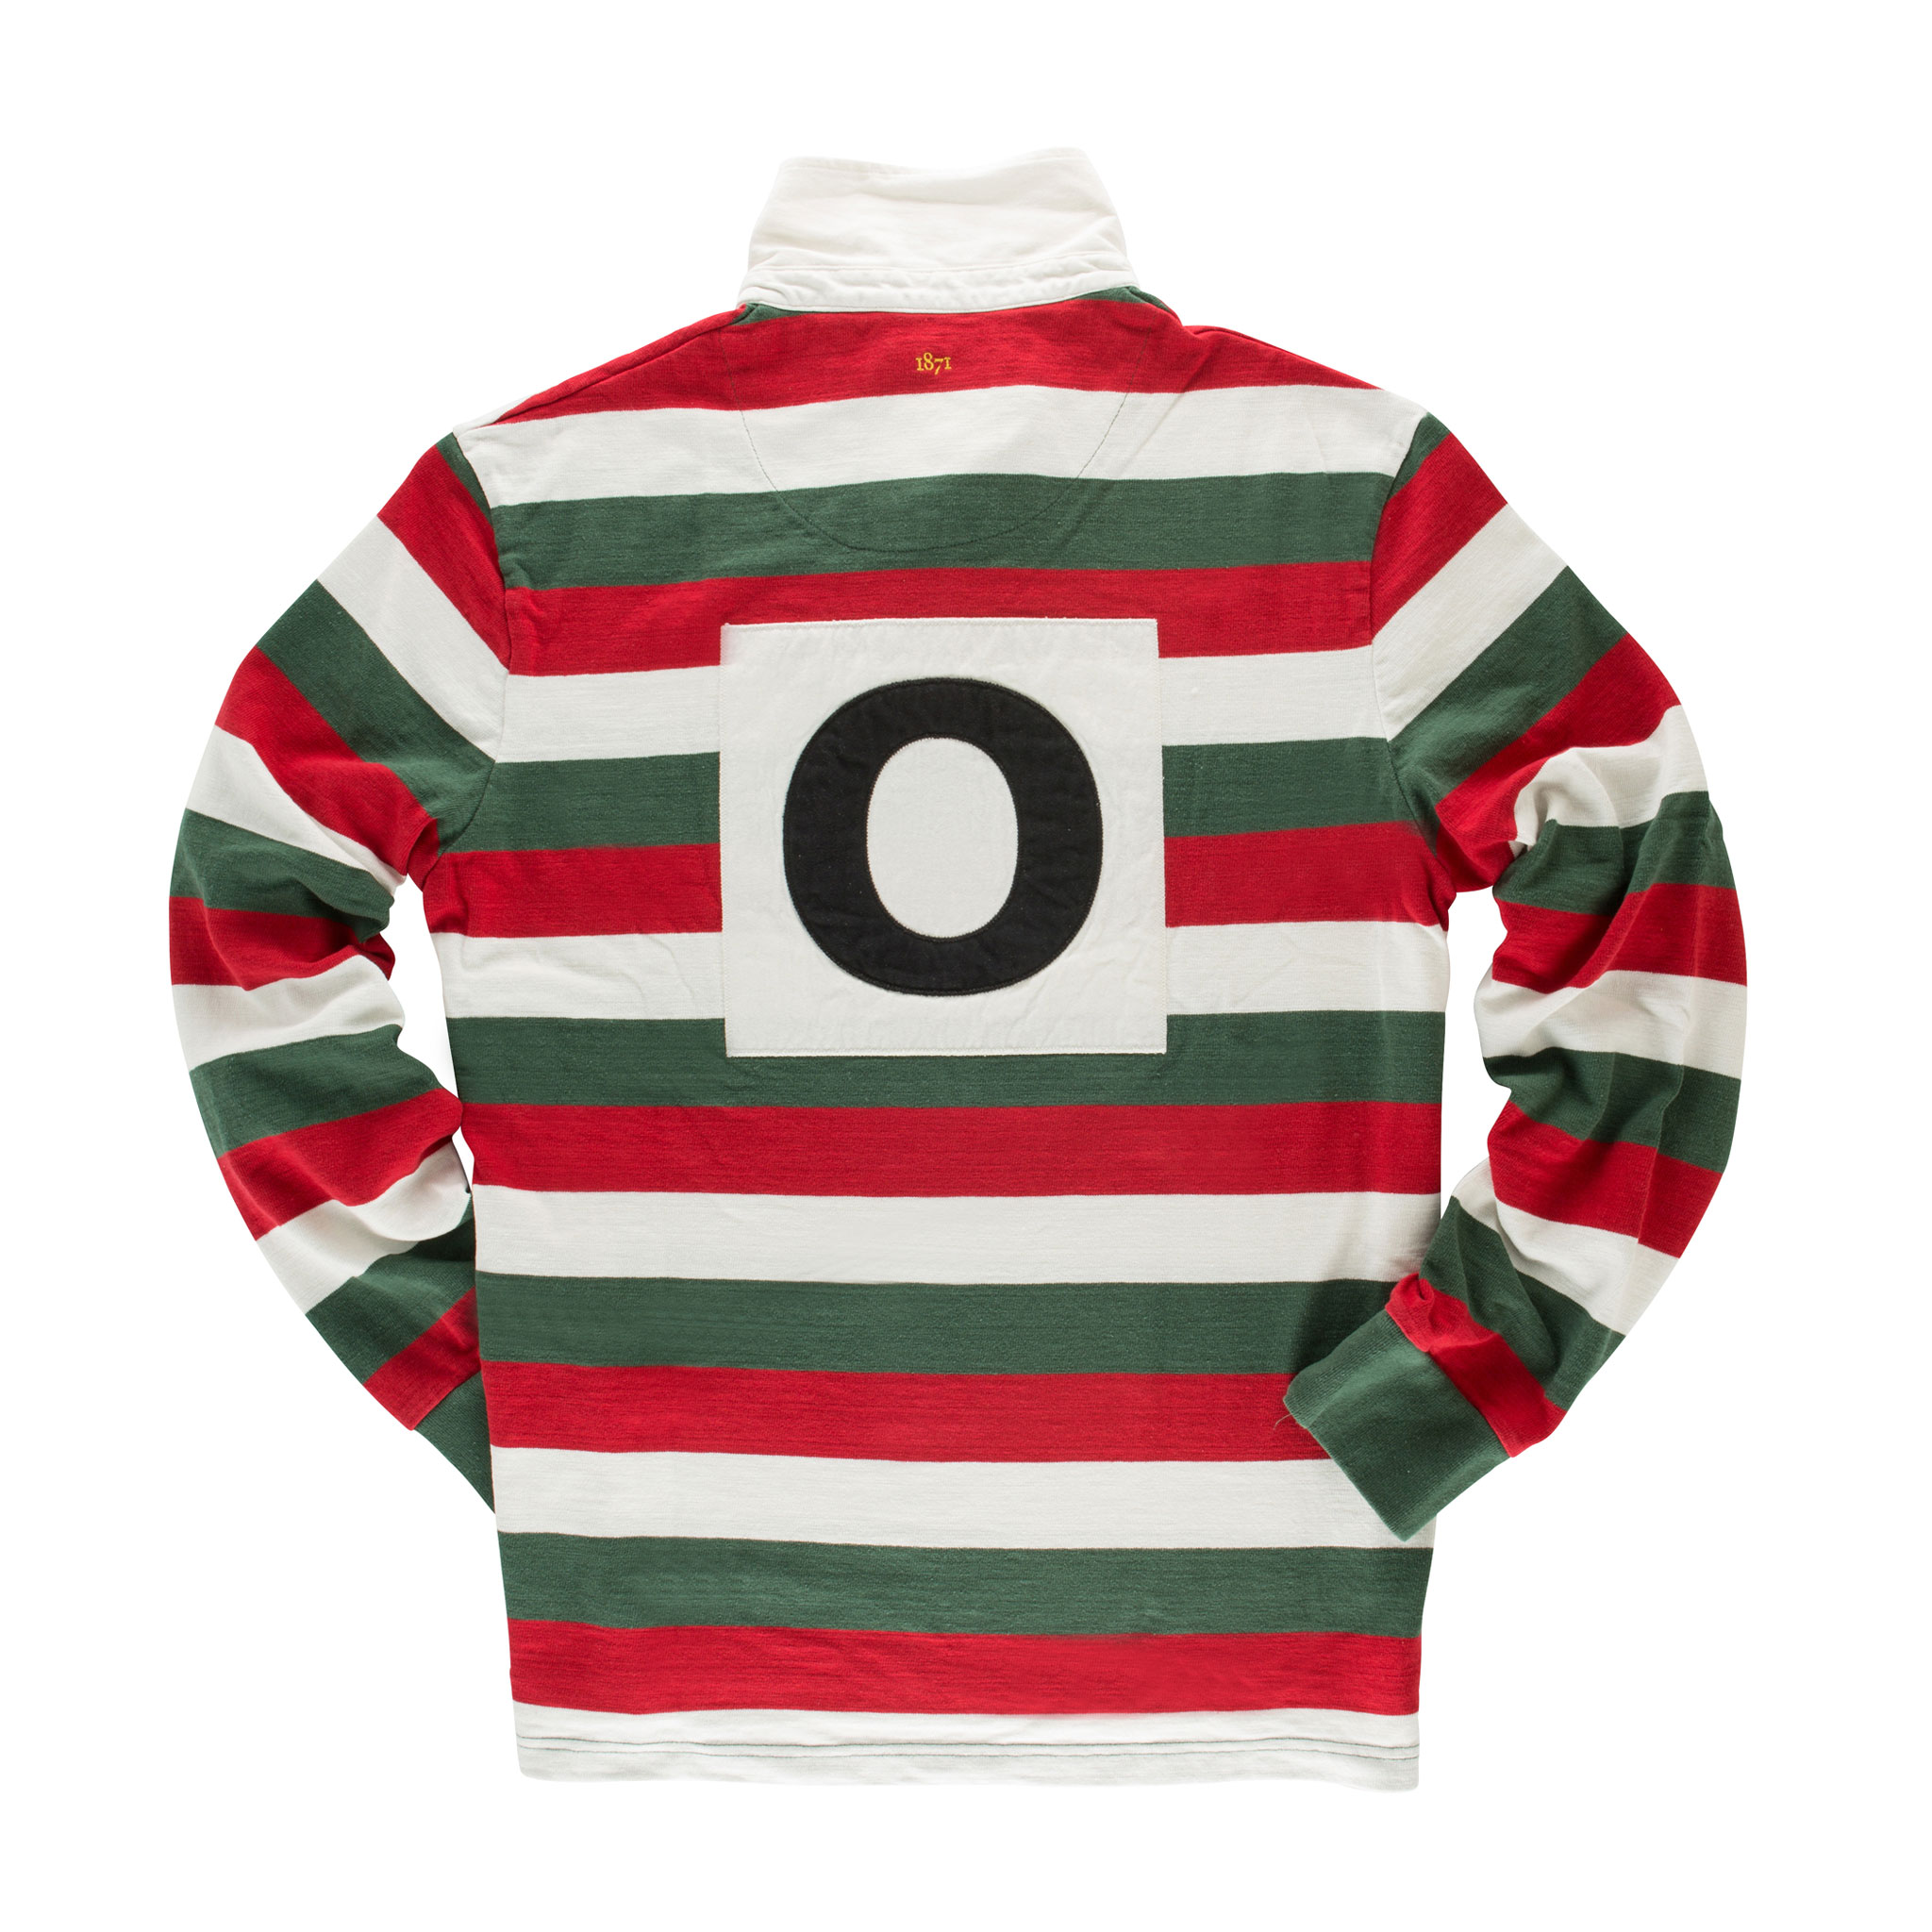 Gipsies 1871 Rugby Shirt - back